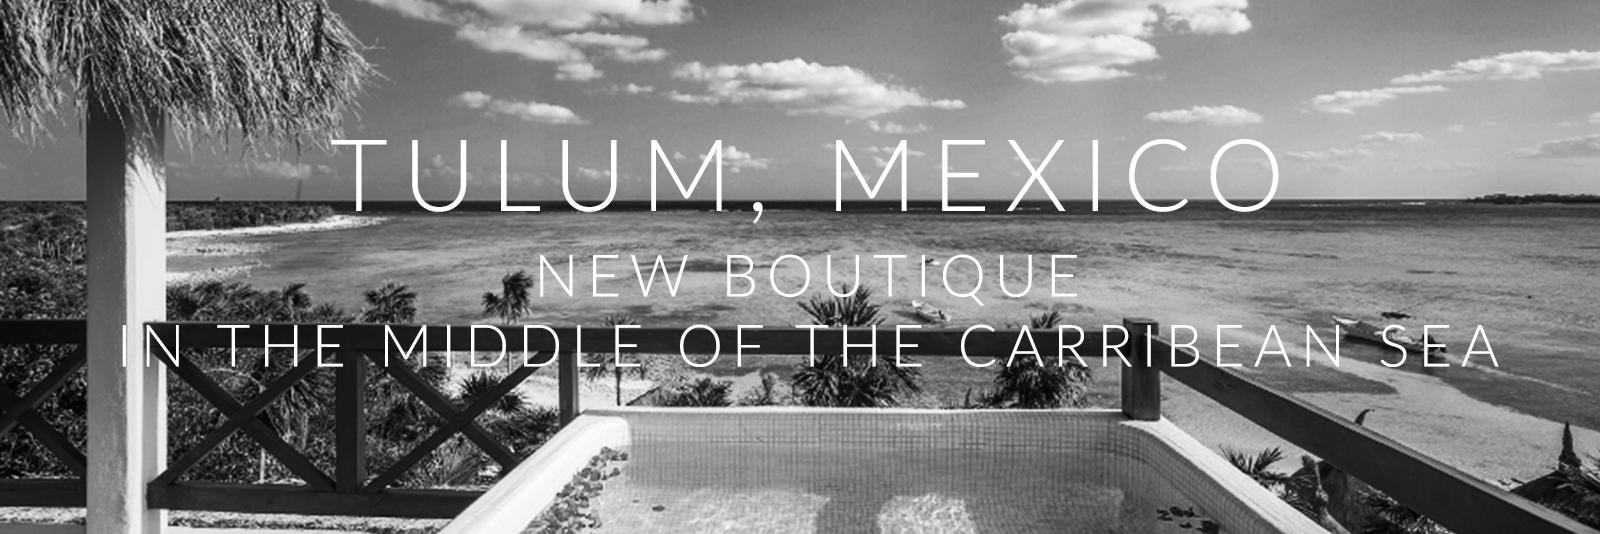 Opening of New Boutique in Tulum, Mexico